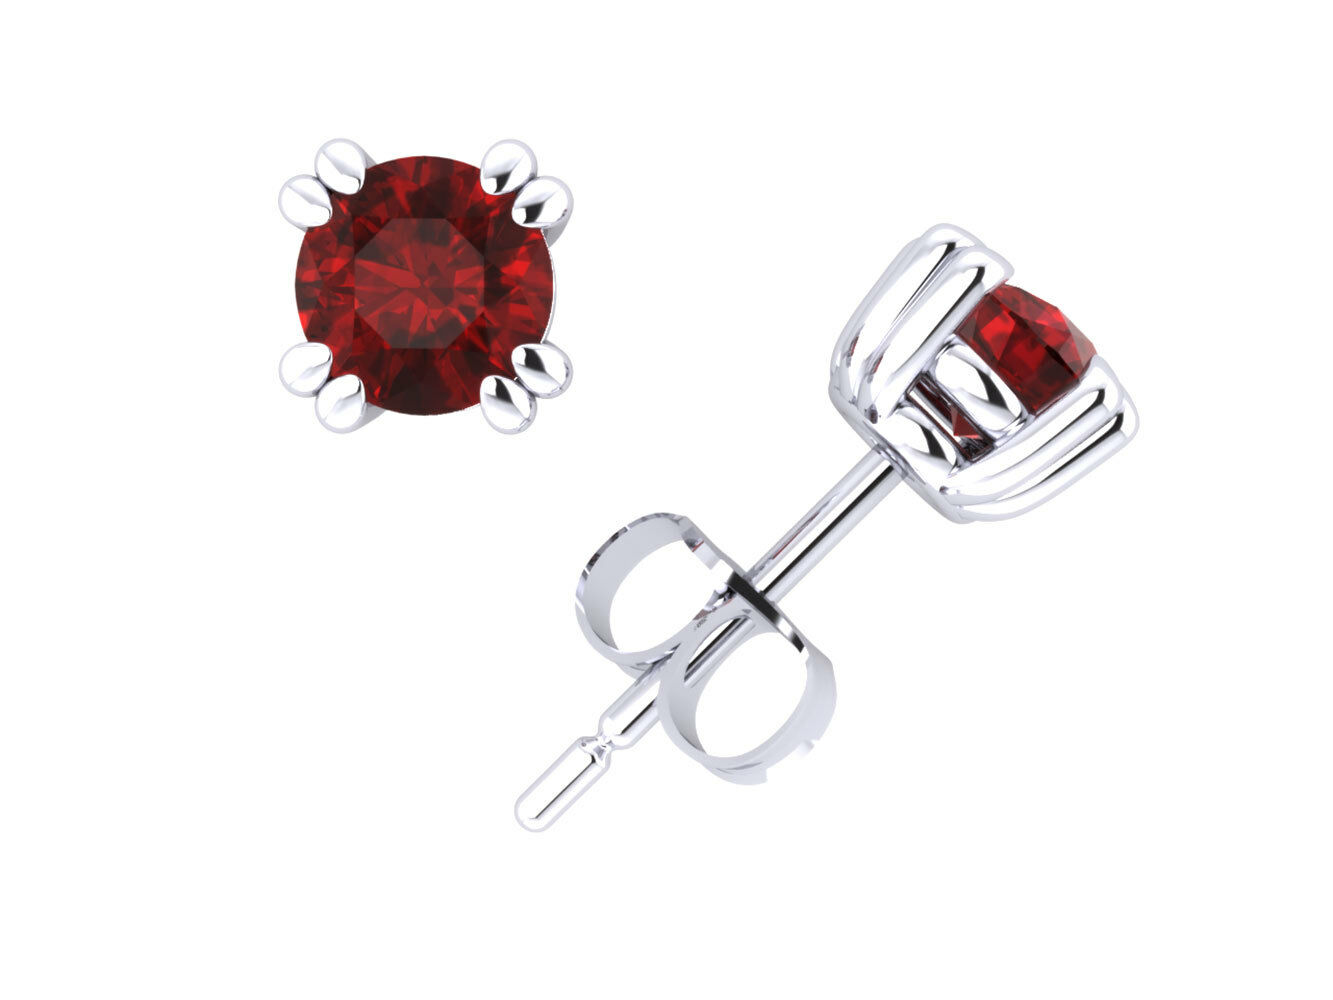 2 5Ct Round Ruby Basket Solitaire Stud Earrings 14Kt White gold Double Prong AA